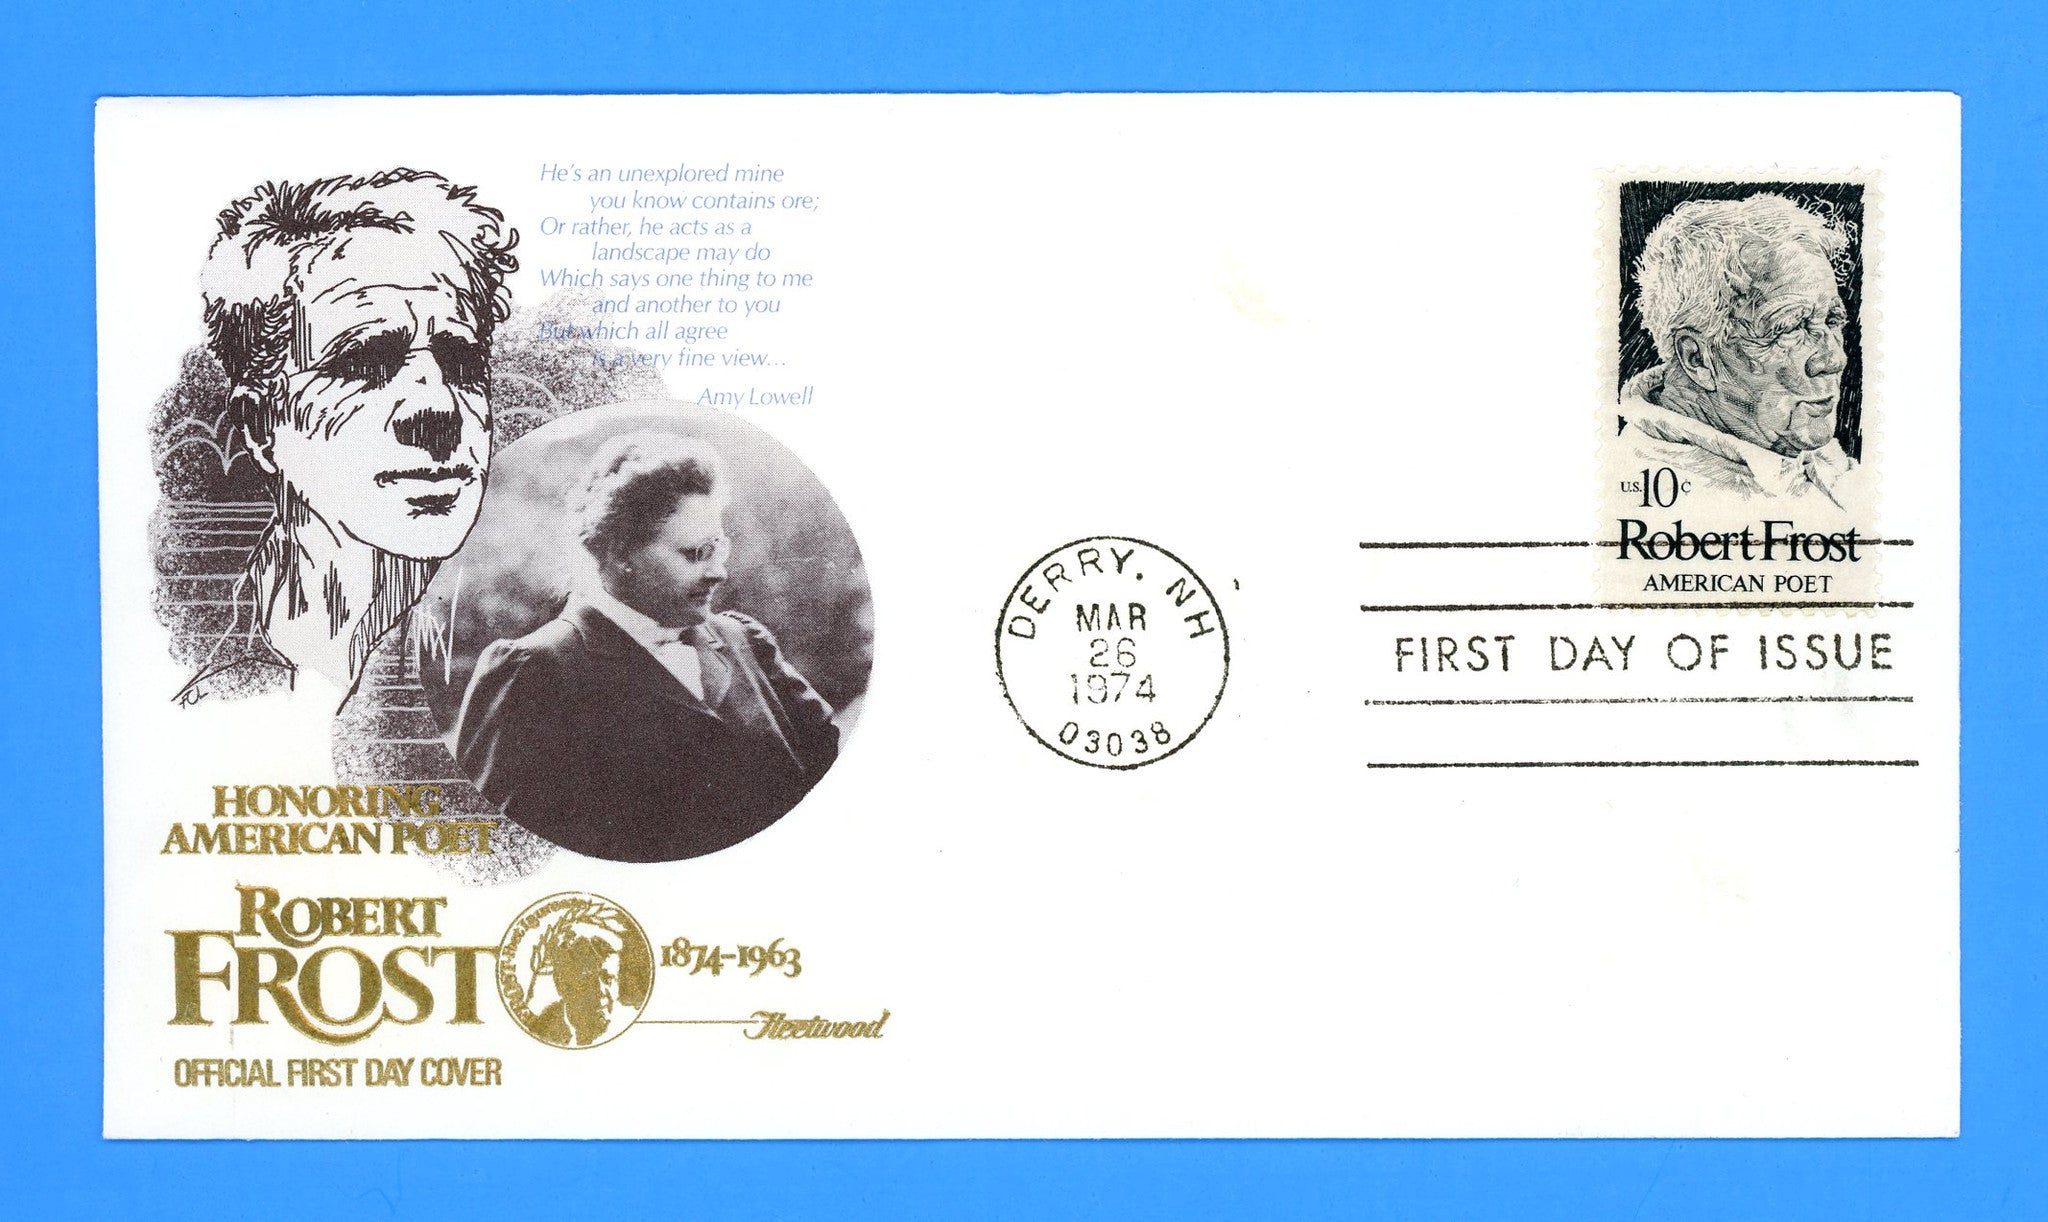 Robert Frost, American Poet First Day Cover by Fleetwood